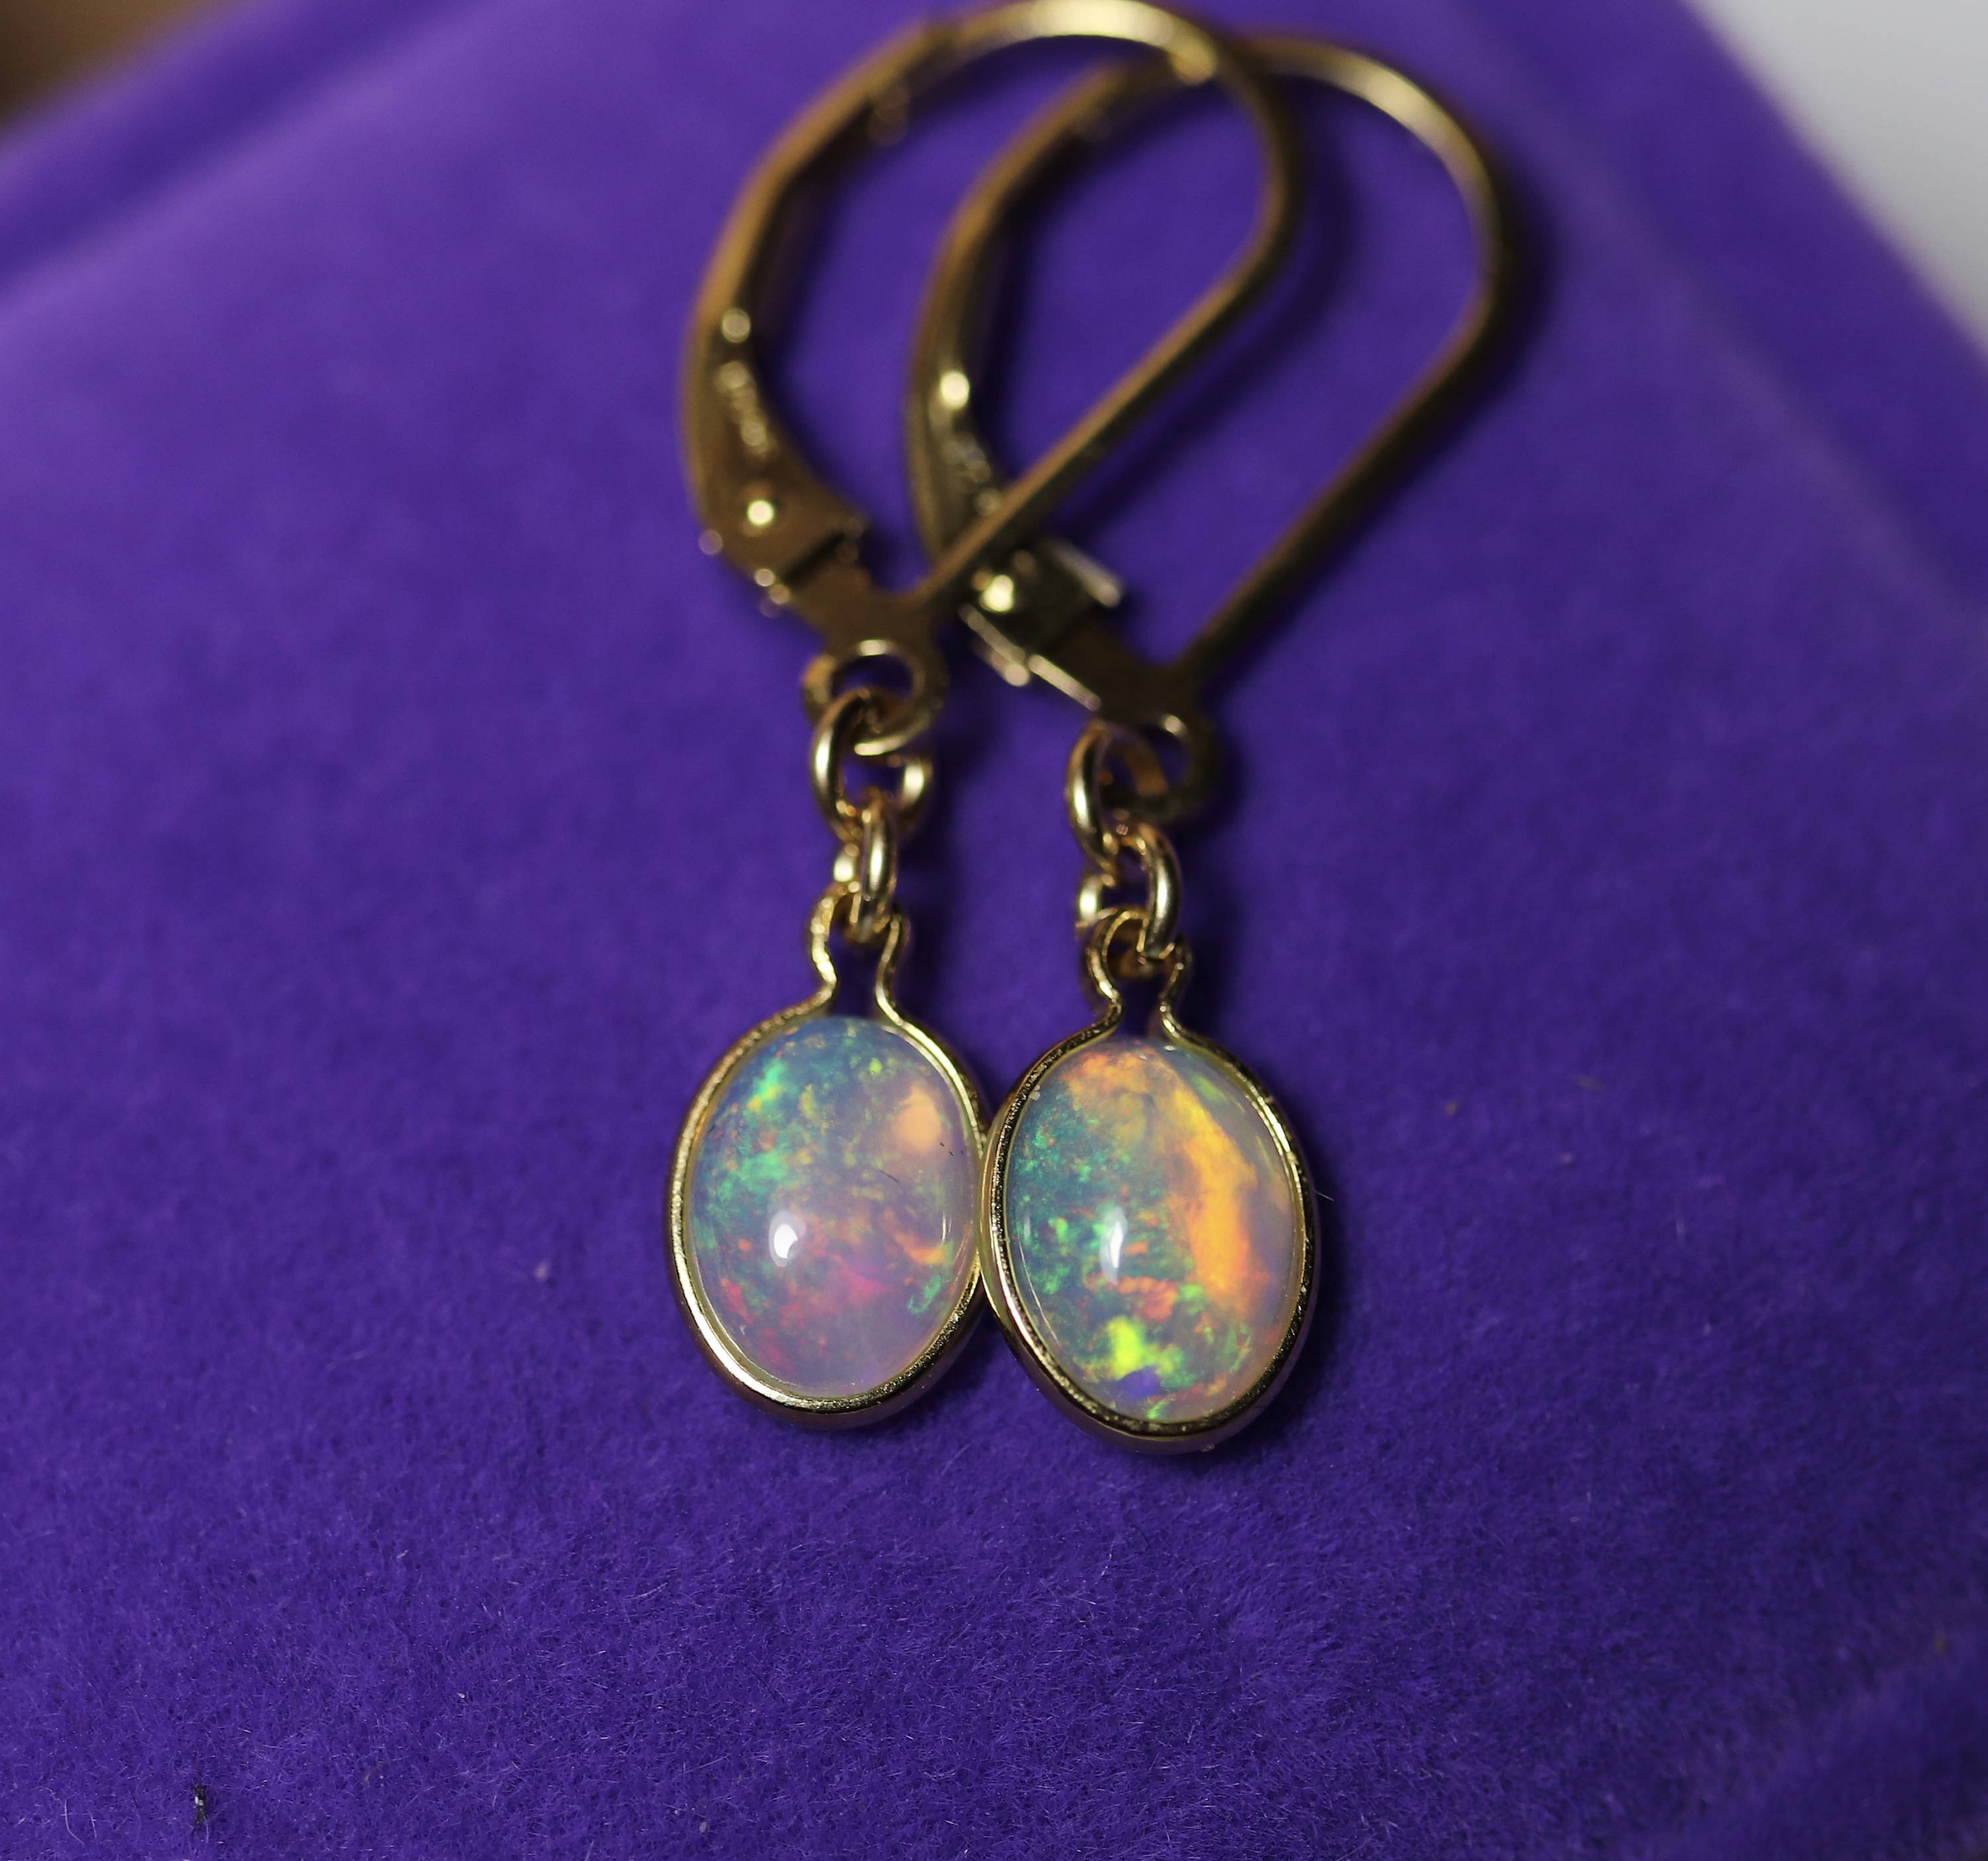 genuine australian opal earrings caymancode handmade bfc natural opals pendant necklace jewelry